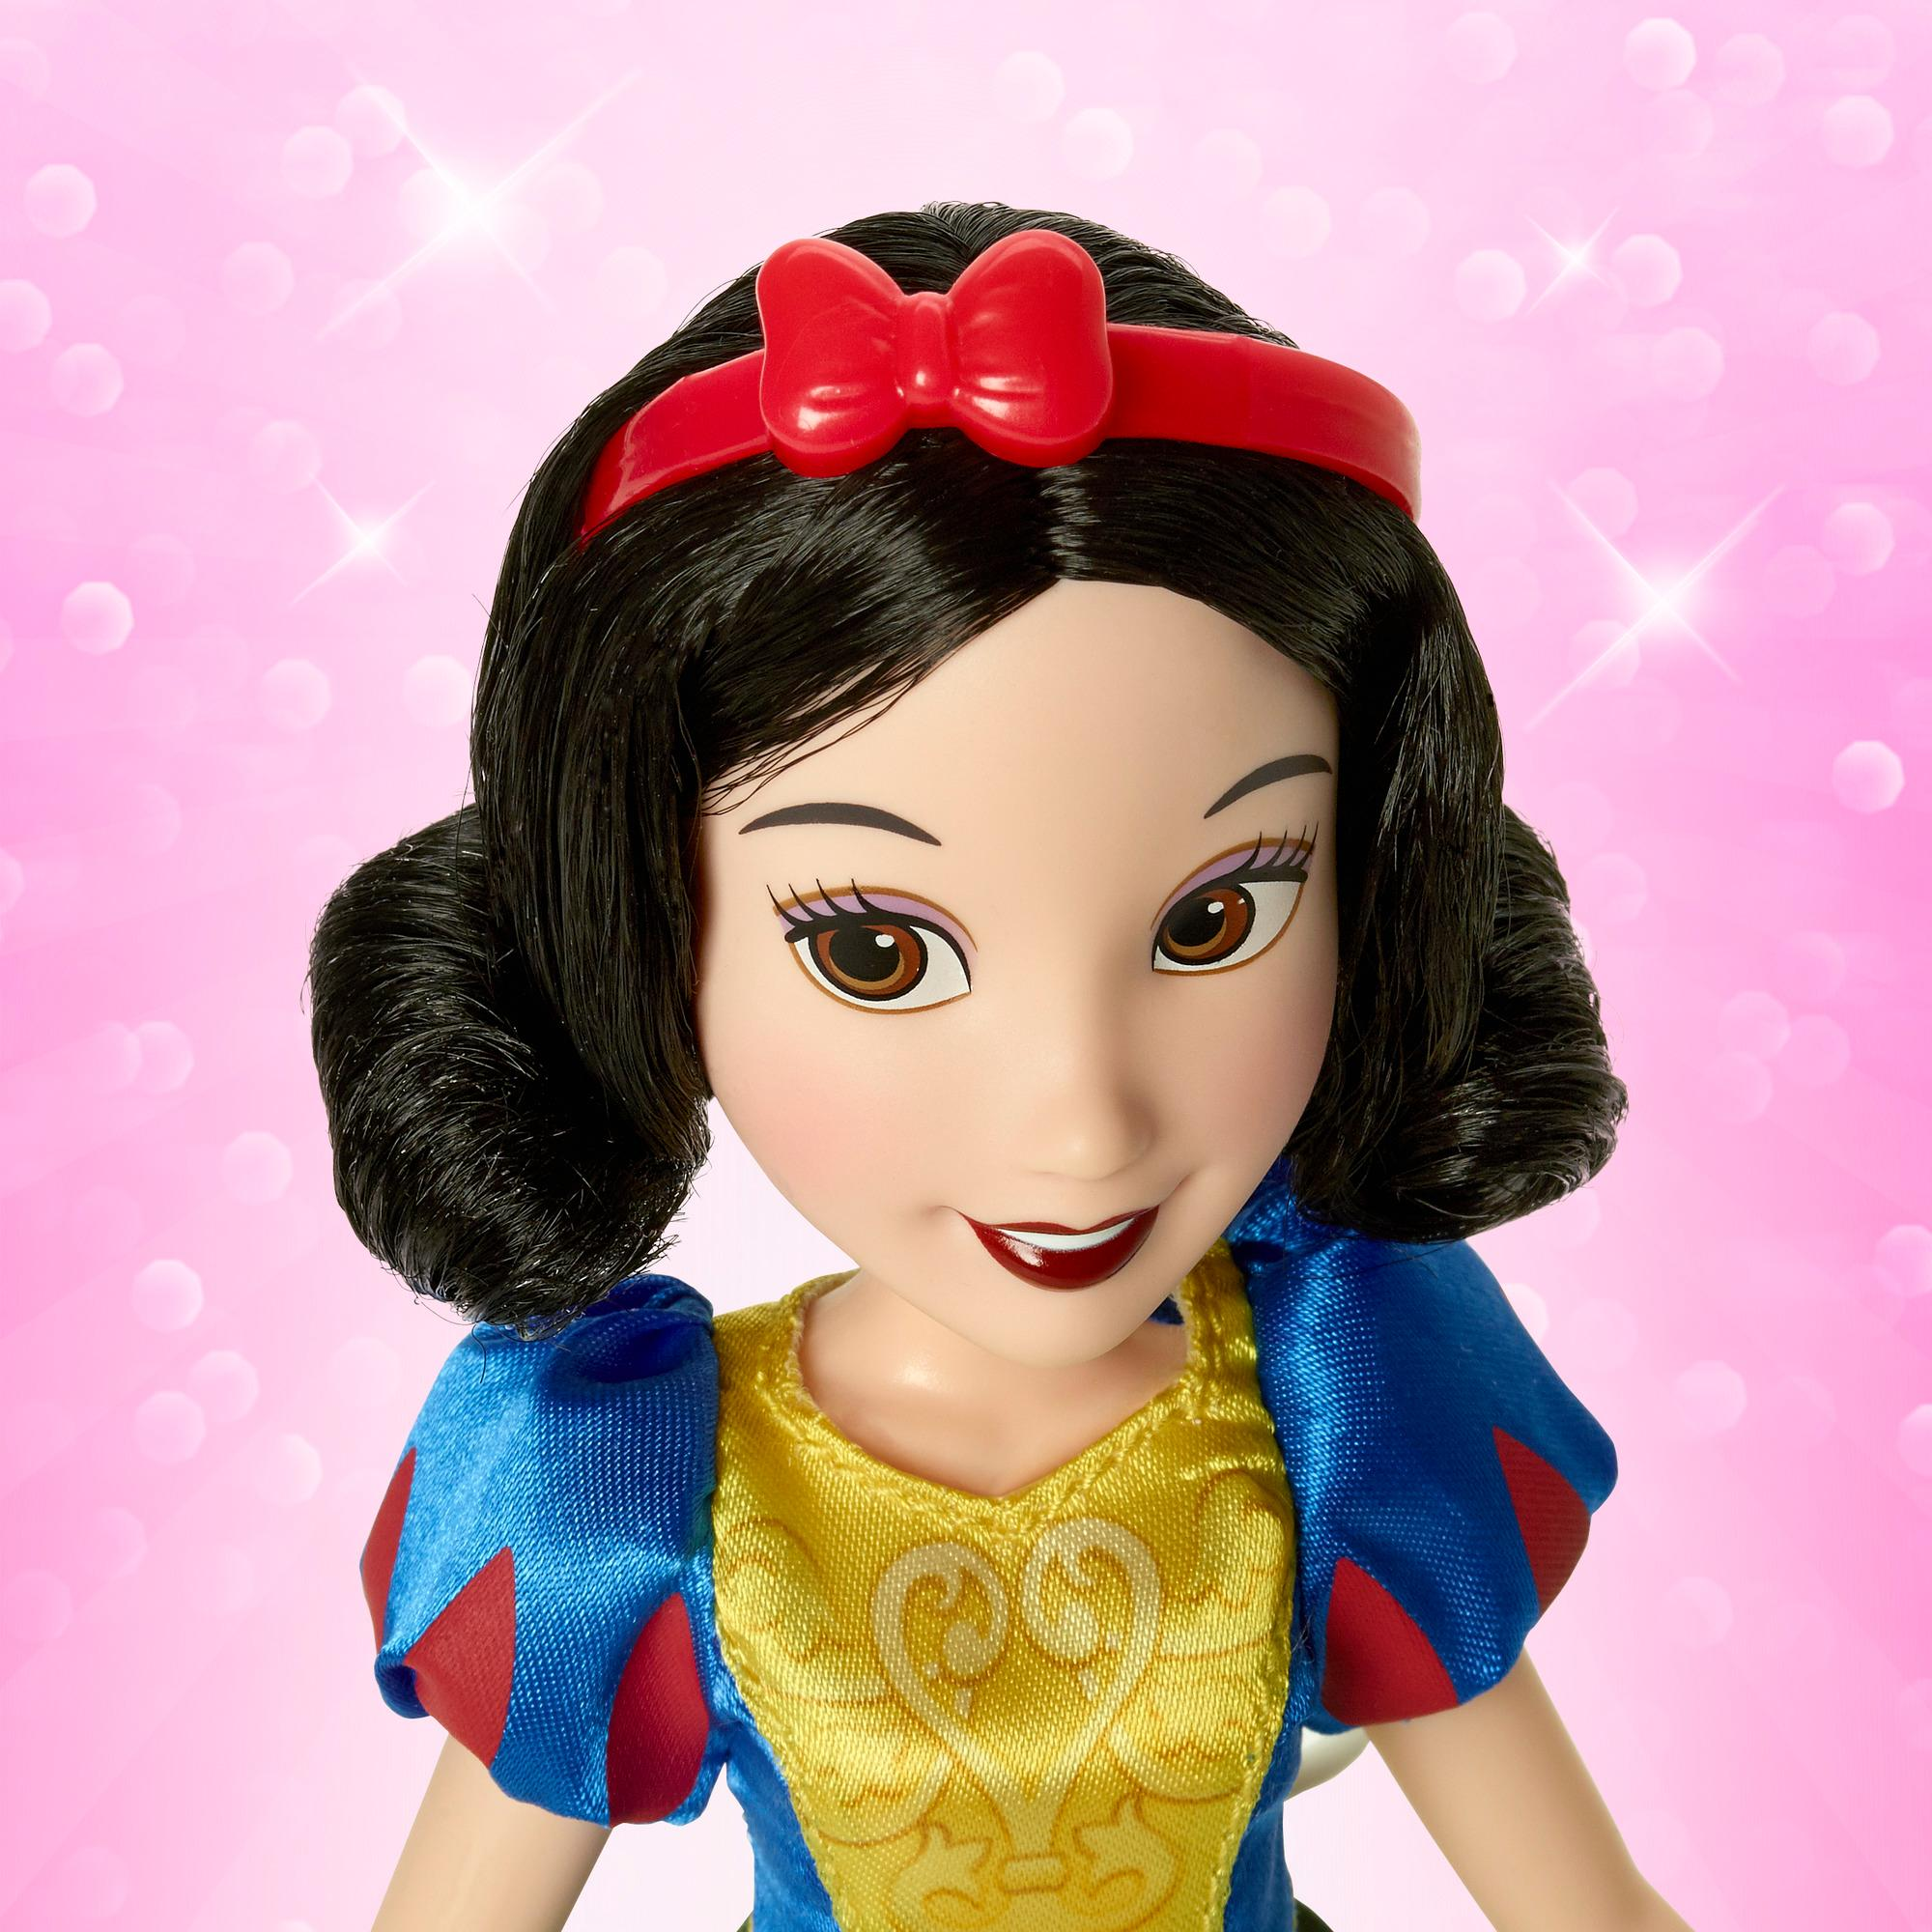 Amazon.com: Disney Princess Snow White's Magical Story ...